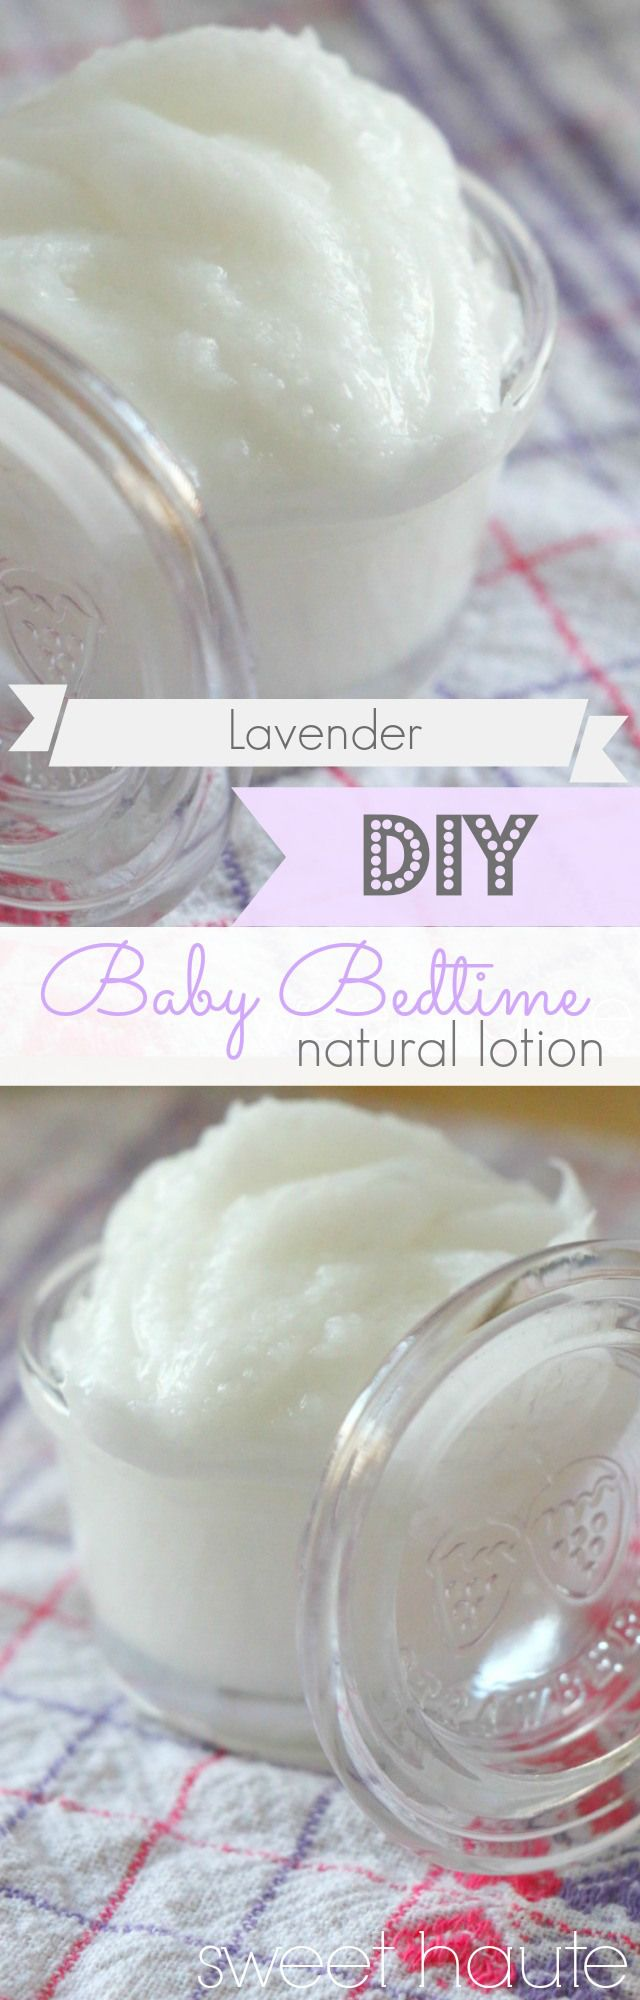 Easy DIY Lavender Baby Bedtime Organic Lotion- SWEET HAUTE sleepy time rub tutorial make it yourself using natural ingredients, pin now...read later! Made by a real person...lol!!